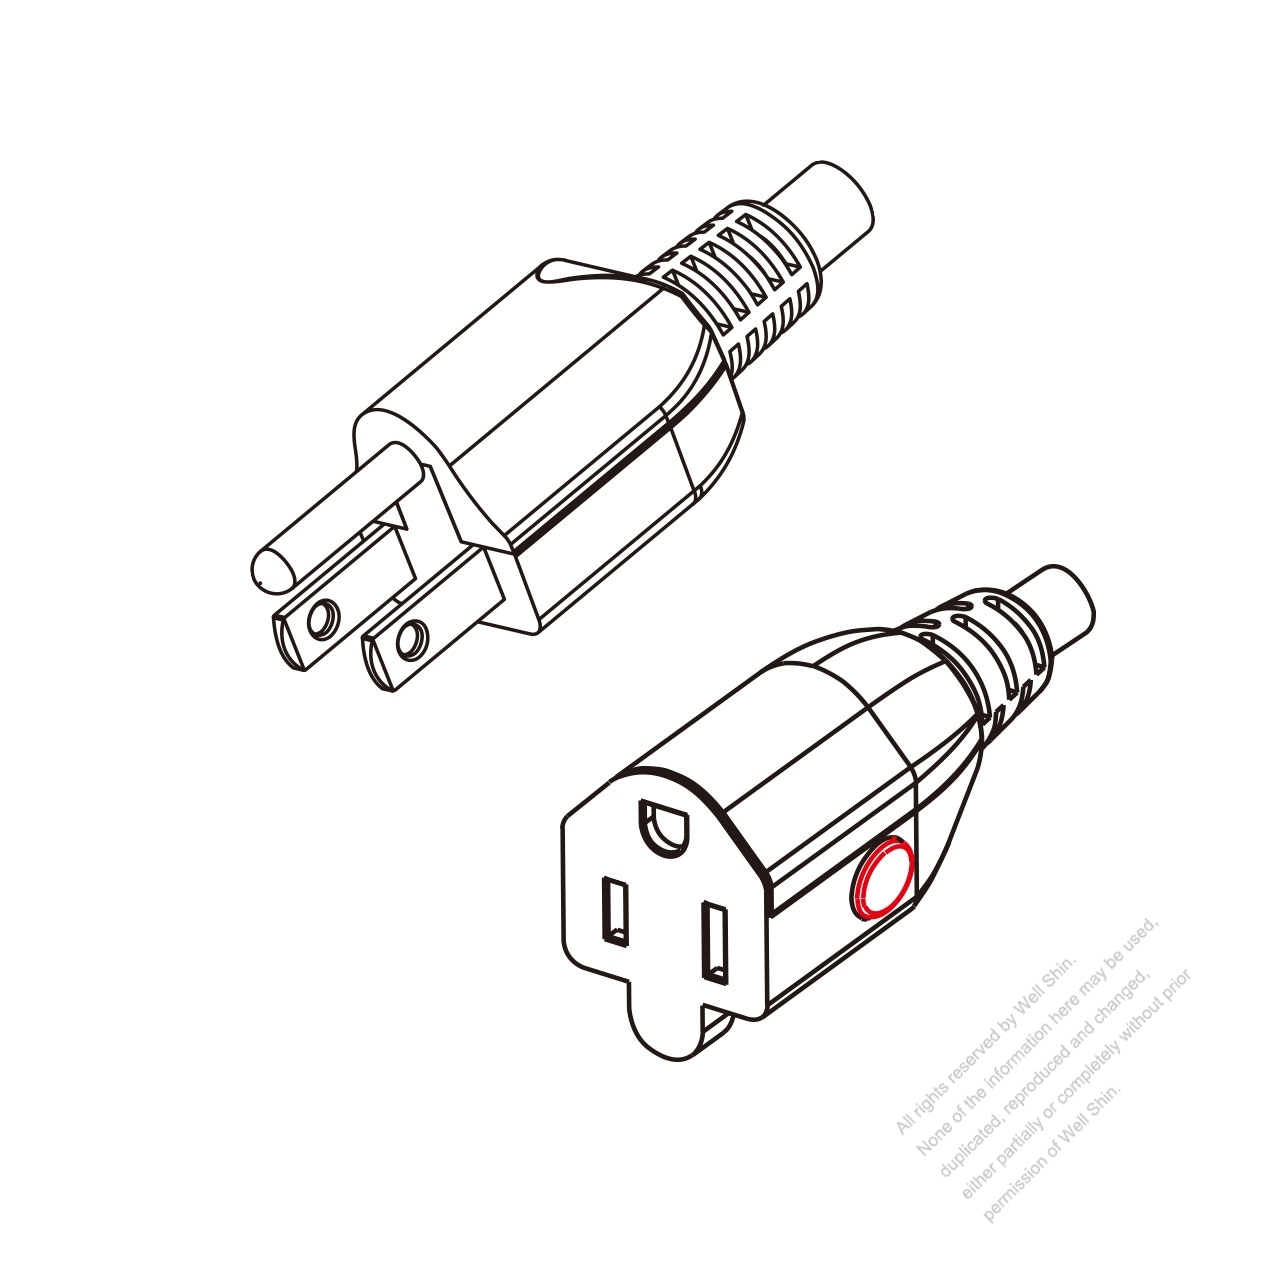 Us Canada 3 Pin Nema 5 15p Plug To Iec 320 5 15r Lock Type